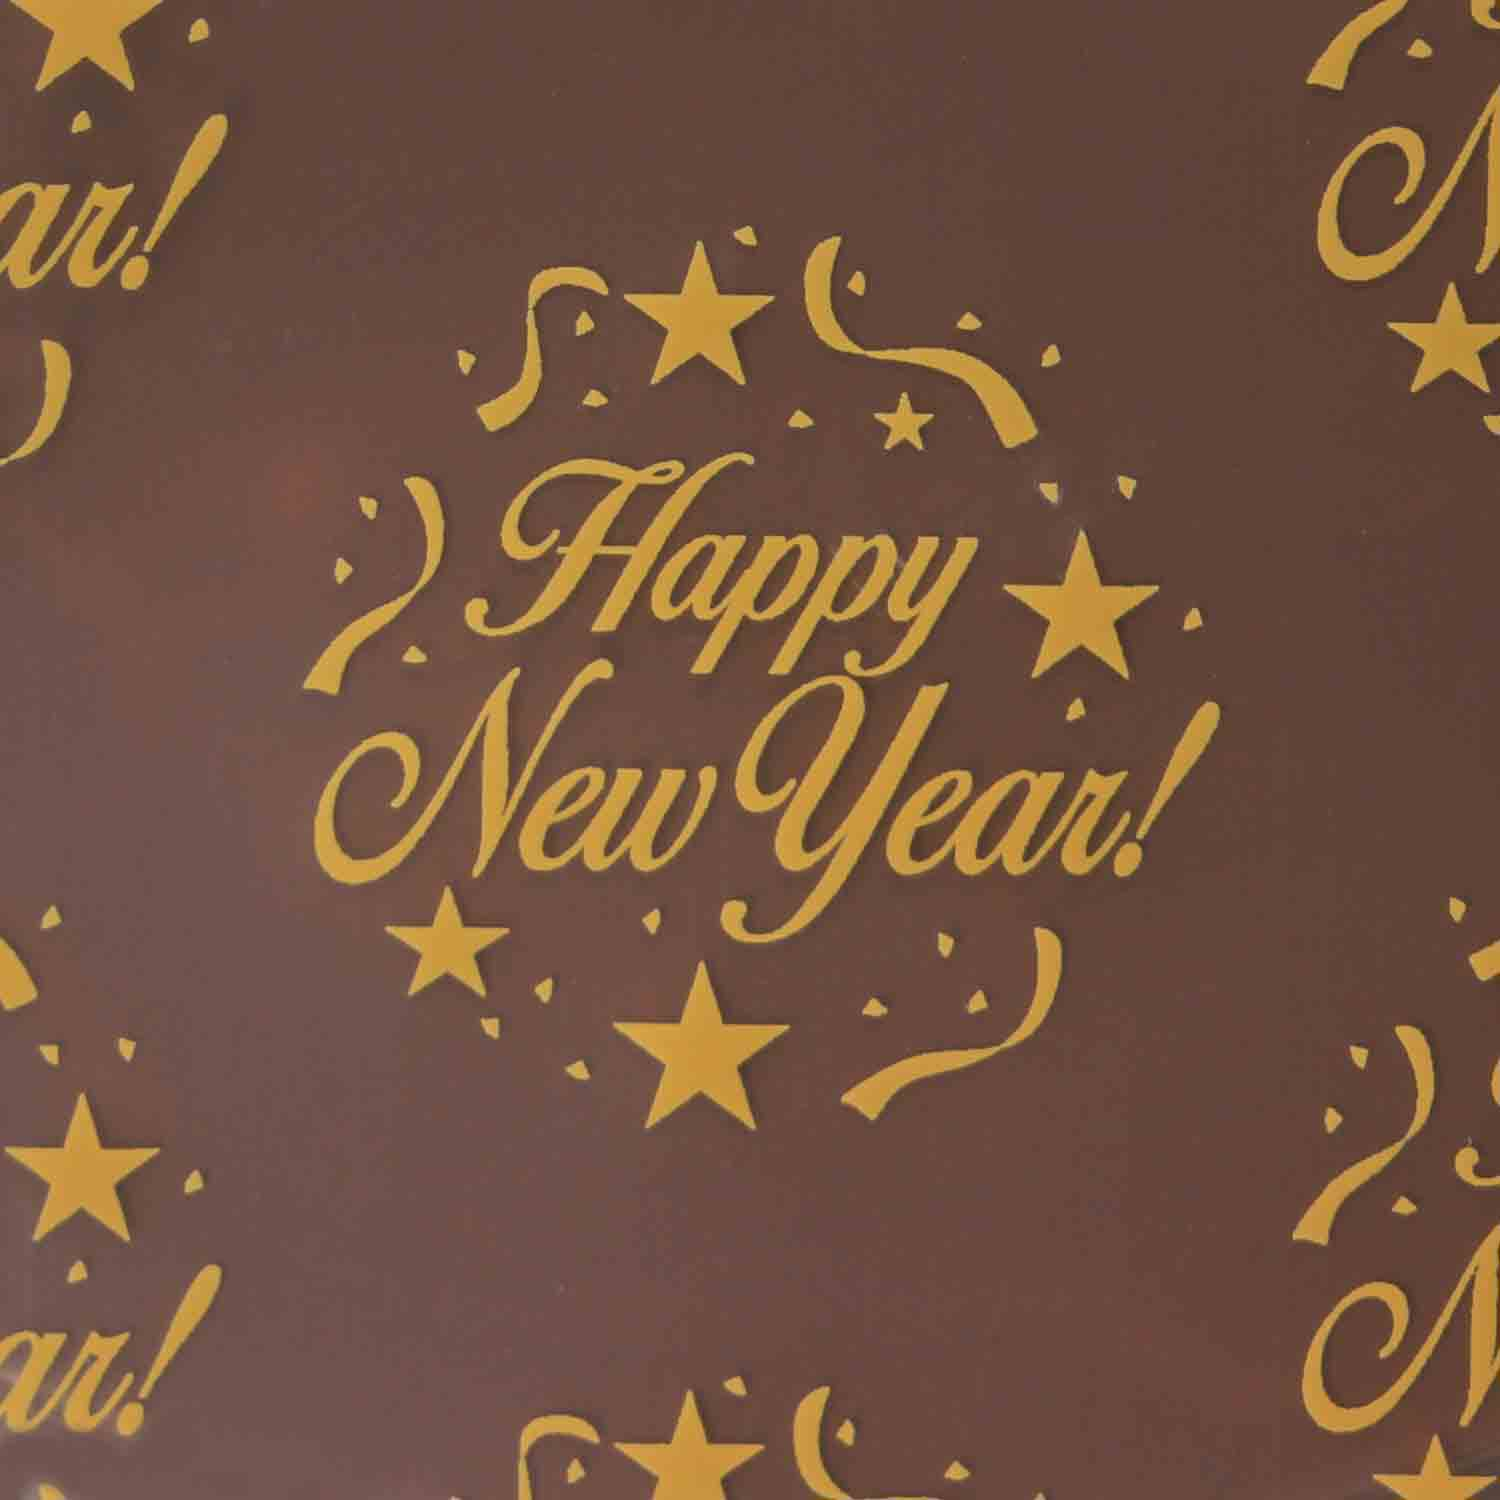 New Year's Chocolate Transfer Sheets